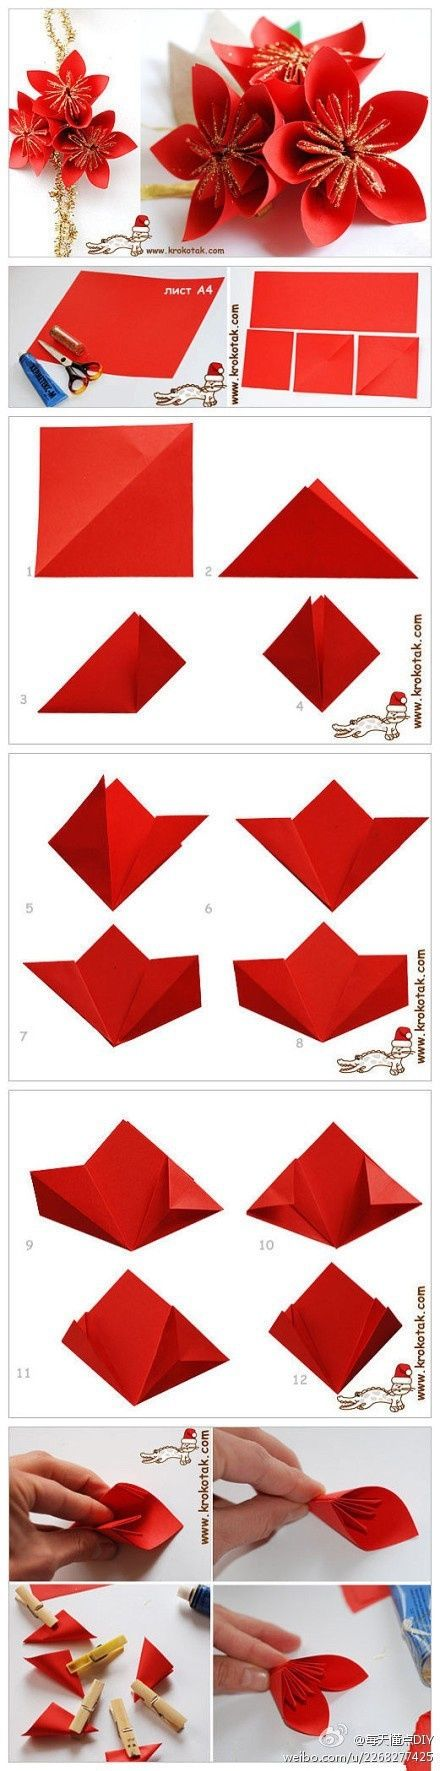 Origami poinsettia pictures photos and images for facebook tumblr origami poinsettia mightylinksfo